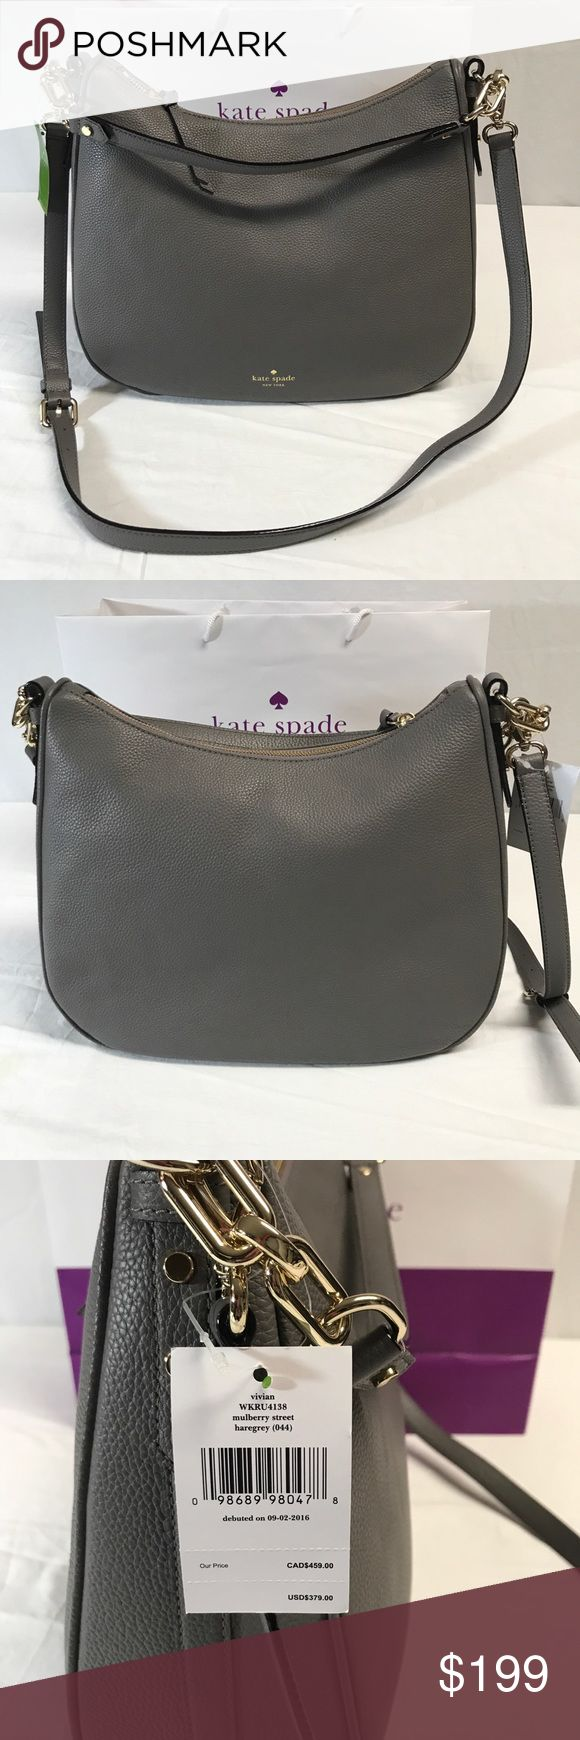 Kate spade gray pebbled leather handbag Gray pebbled leather handbag. Shoulder bag is 10 inches across zipper, cross body handle drop is 21 inches. Gray fabric inside with goldtone hardware. One Shorthandle one Crossbody handle. Bottom of bag is 13 inches across. the height is approximately 10 inches. The depth at the widest point is 5 inches. Kate spade New York Bags Shoulder Bags